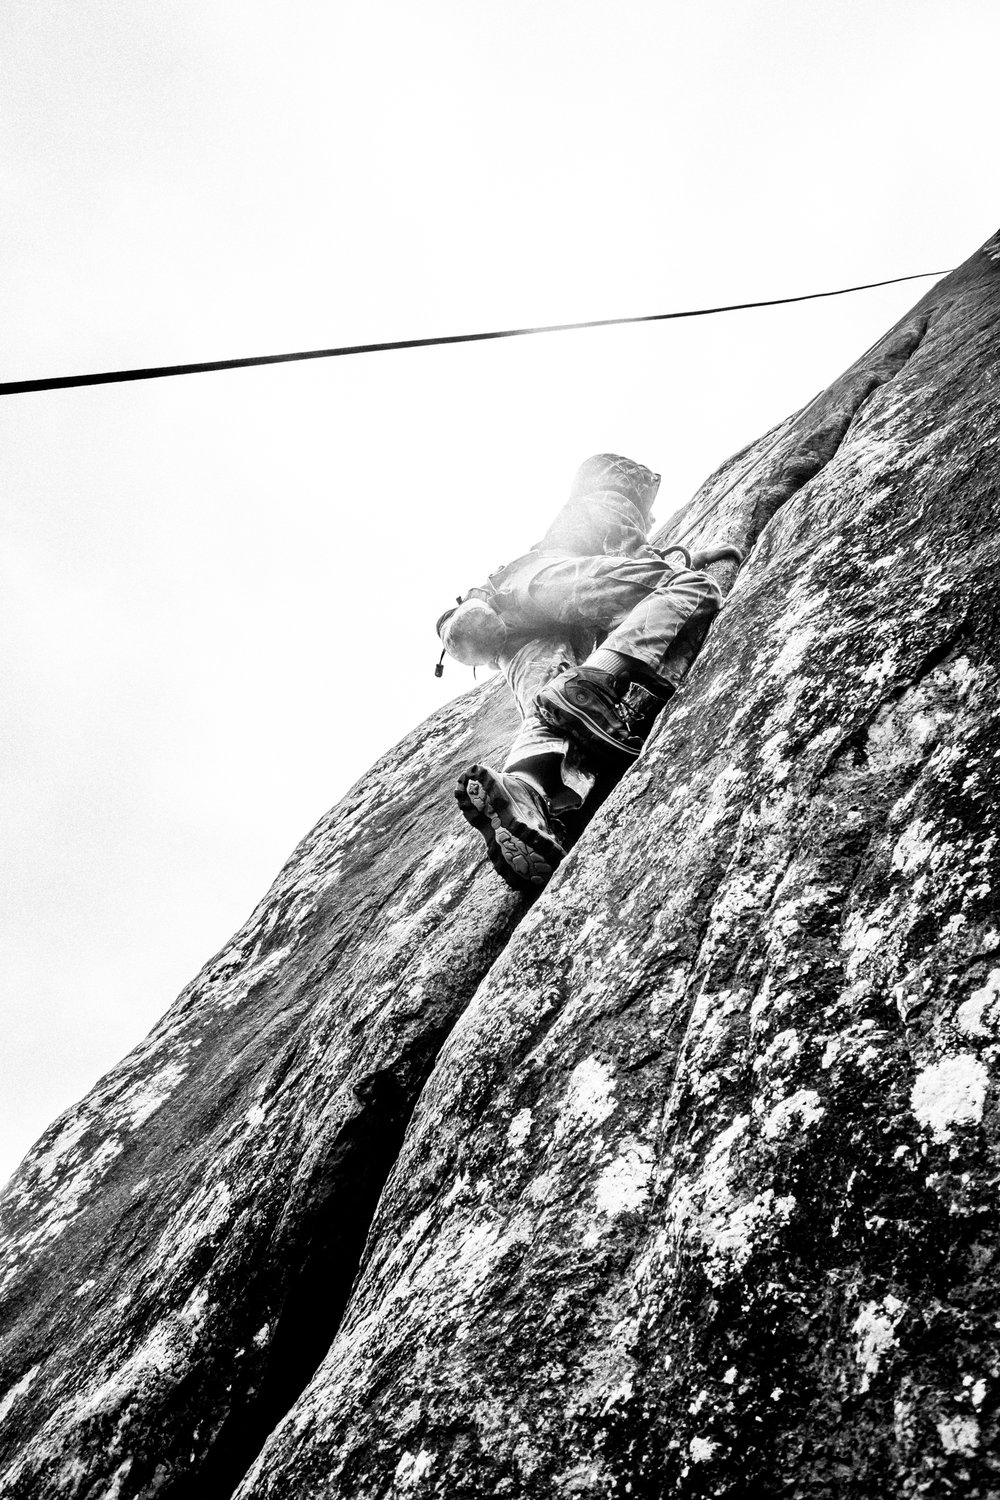 4-22-17 Rock Climbing black & white-16.jpg